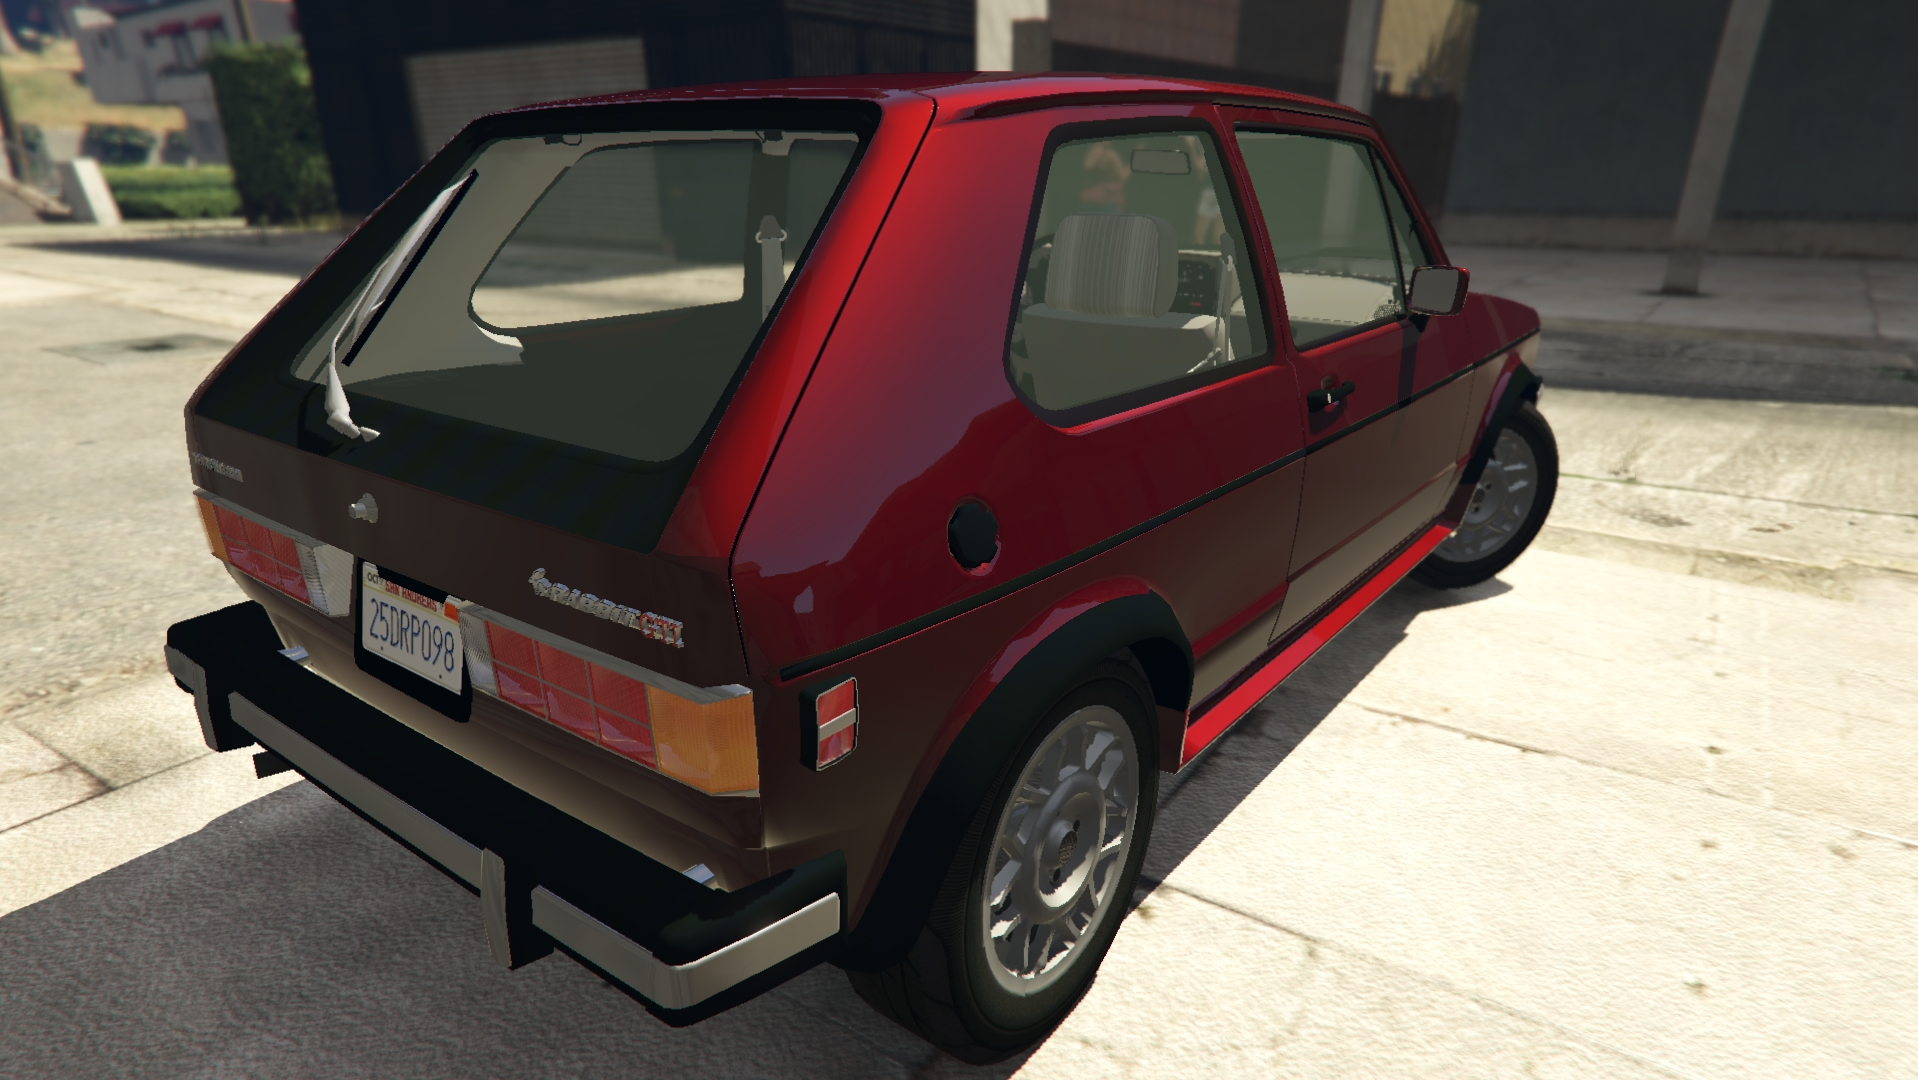 Volkswagen Rabbit 1986 для GTA V - Скриншот 2